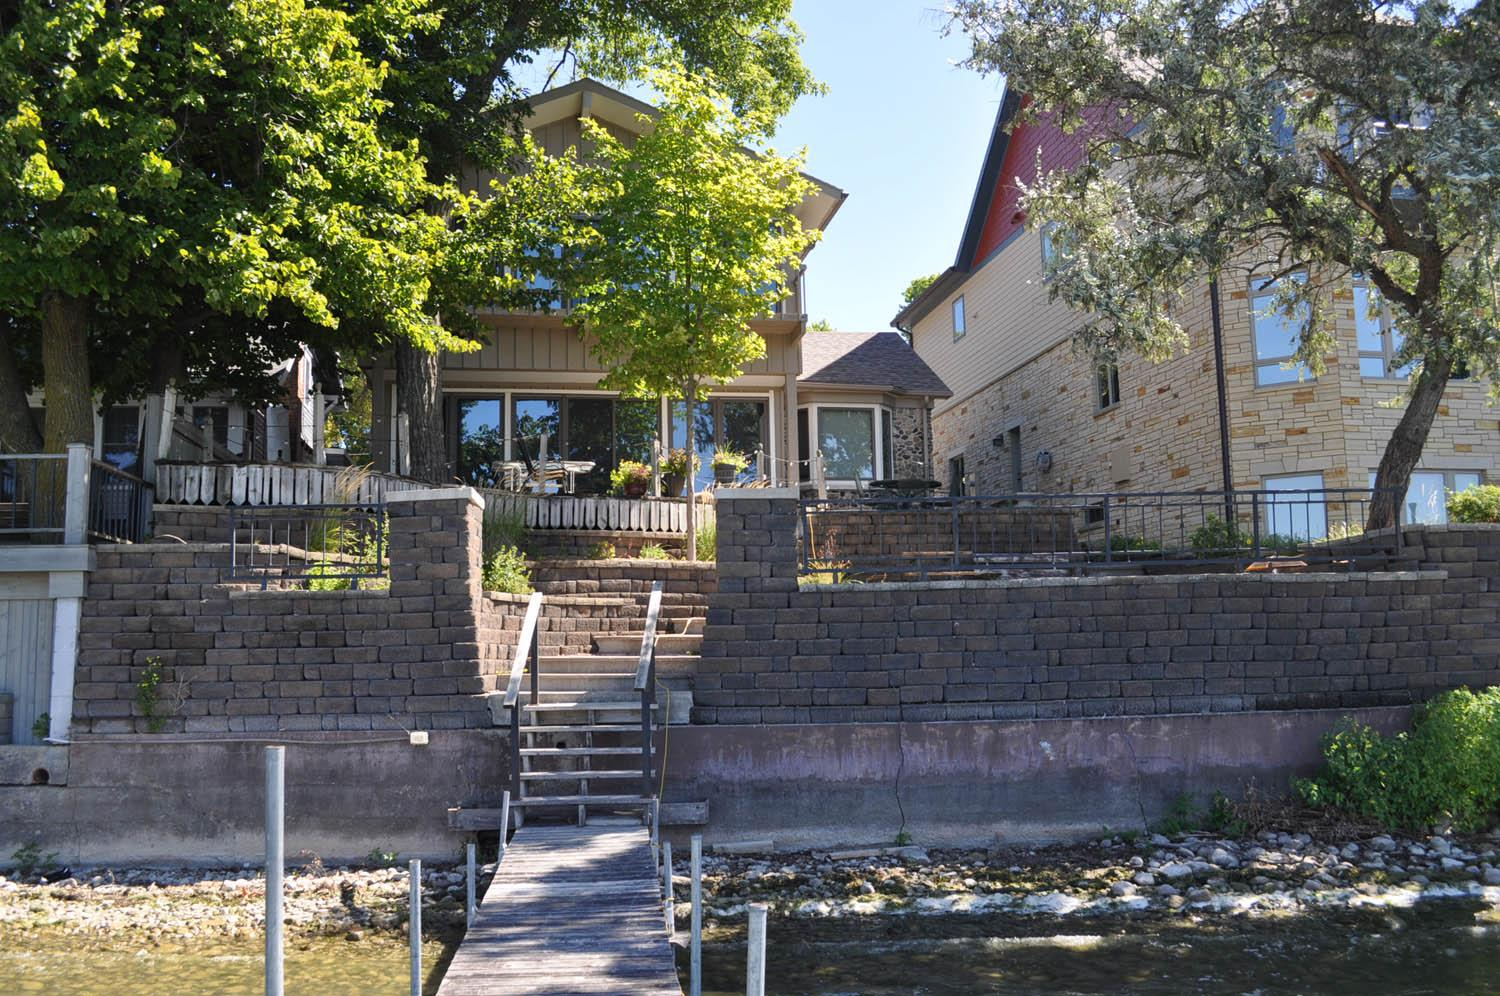 Gorgeous lake front property close to downtown Clear Lake. Spend your summers within walking distance to concerts in City Park, making memories at city beach and letting the kids play at the new splash pad! This location is hard to beat and it features some of the best sunsets Clear Lake has to offer. Many recent updates in this 5 bedroom home include solid surface countertops and beautiful quality cabinetry. The main level is an open floor plan with a large living room and an entire wall of windows overlooking the back patio and lake. Call your favorite Realtor if you are interested in touring this property.